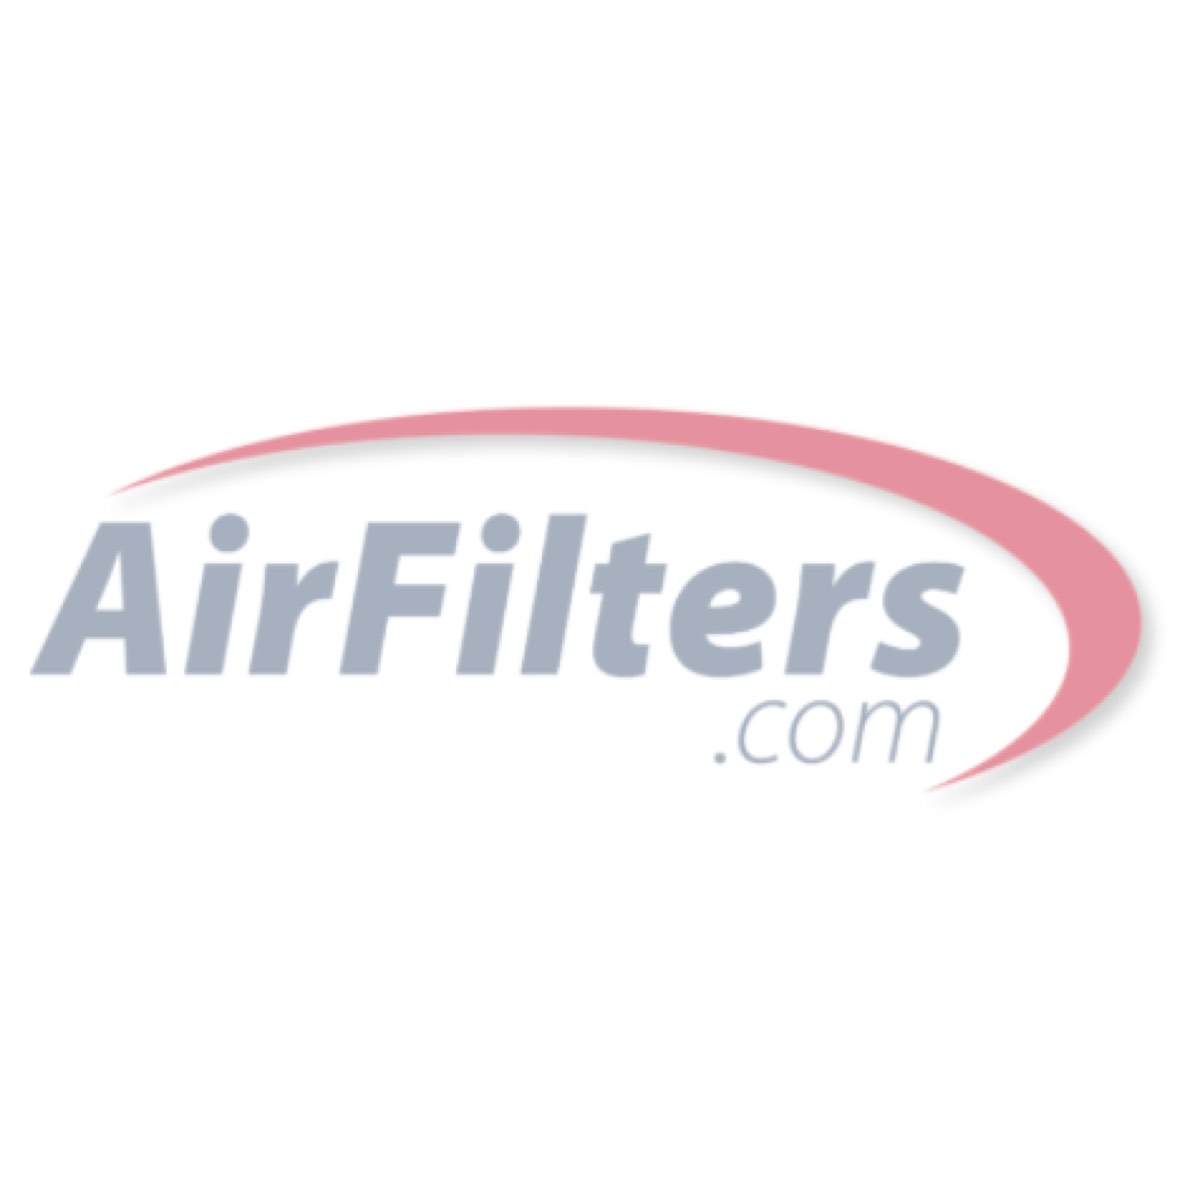 Electro-Air 20x26x5 Furnace Filters